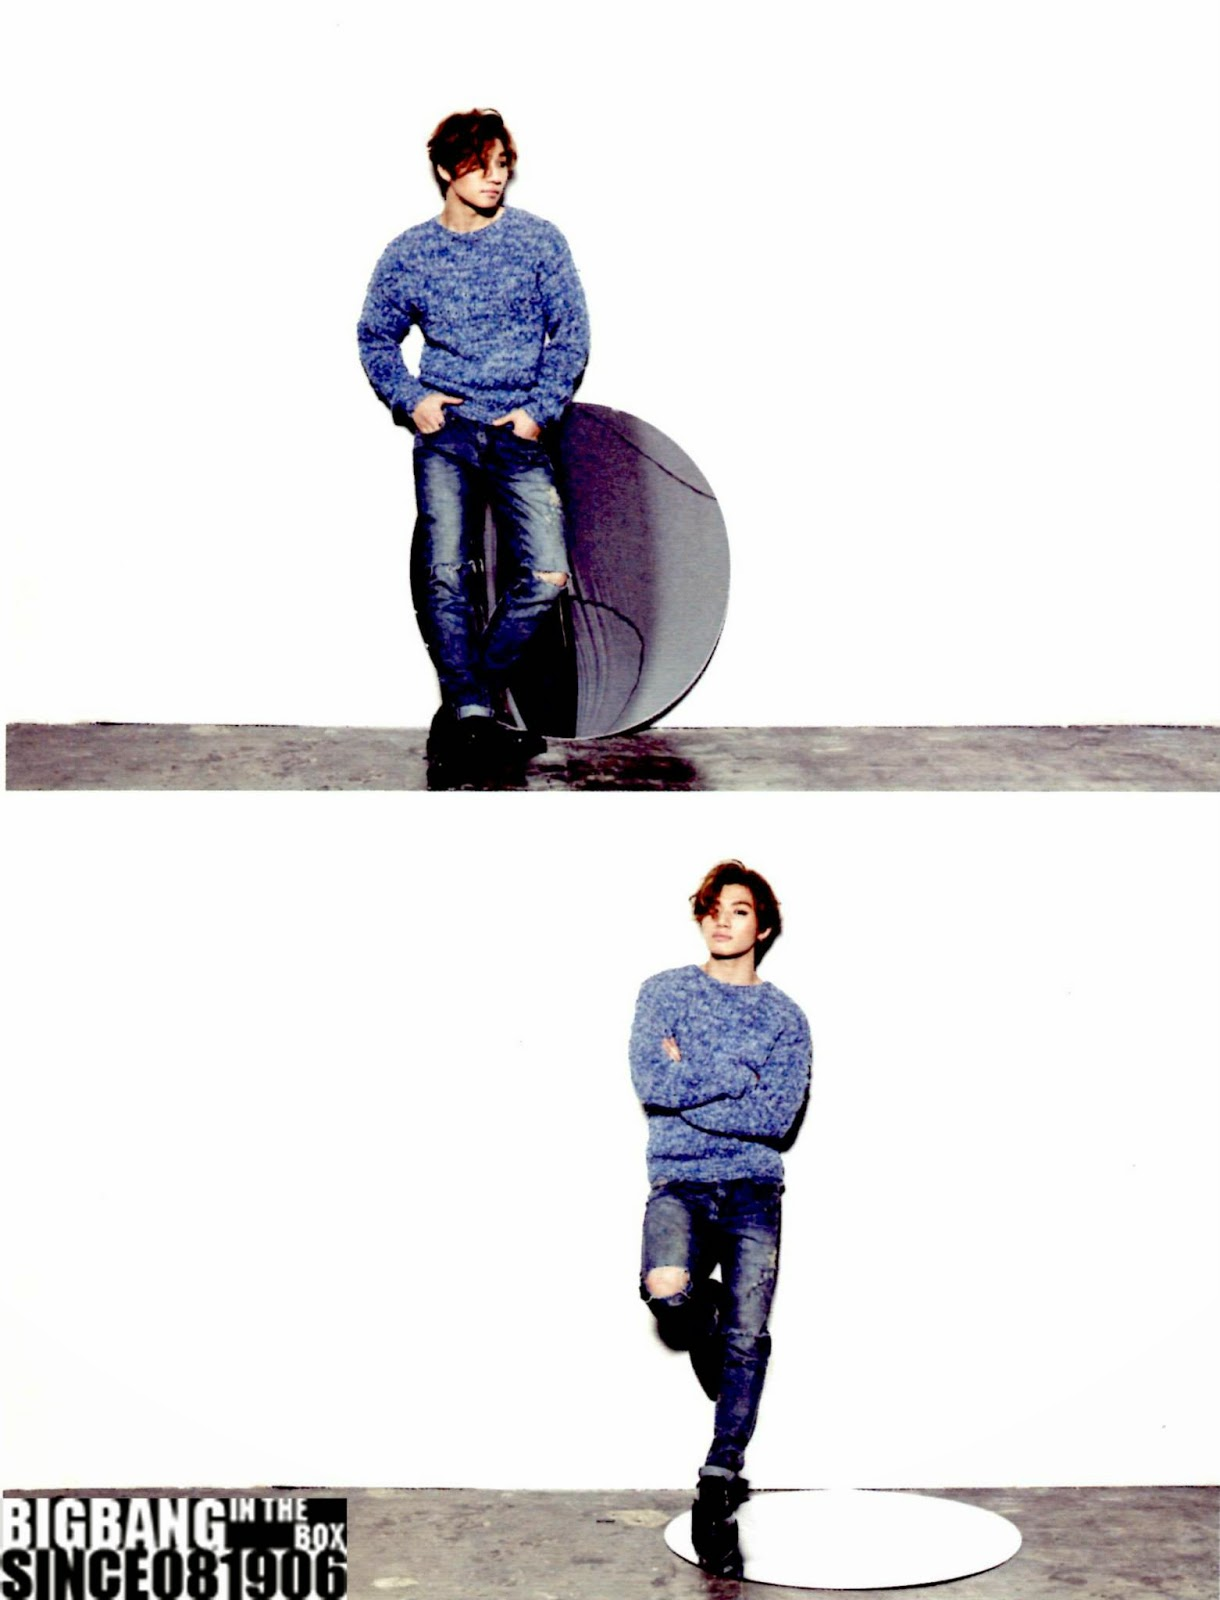 Scans: Big Bang's 2015 Welcoming Collection [PHOTOS]  Scans: Big Bang's 2015 Welcoming Collection [PHOTOS]  Scans: Big Bang's 2015 Welcoming Collection [PHOTOS]  Scans: Big Bang's 2015 Welcoming Collection [PHOTOS]  Scans: Big Bang's 2015 Welcoming Collection [PHOTOS]  Scans: Big Bang's 2015 Welcoming Collection [PHOTOS]  Scans: Big Bang's 2015 Welcoming Collection [PHOTOS]  Scans: Big Bang's 2015 Welcoming Collection [PHOTOS]  Scans: Big Bang's 2015 Welcoming Collection [PHOTOS]  Scans: Big Bang's 2015 Welcoming Collection [PHOTOS]  Scans: Big Bang's 2015 Welcoming Collection [PHOTOS]  Scans: Big Bang's 2015 Welcoming Collection [PHOTOS]  Scans: Big Bang's 2015 Welcoming Collection [PHOTOS]  Scans: Big Bang's 2015 Welcoming Collection [PHOTOS]  Scans: Big Bang's 2015 Welcoming Collection [PHOTOS]  Scans: Big Bang's 2015 Welcoming Collection [PHOTOS]  Scans: Big Bang's 2015 Welcoming Collection [PHOTOS]  Scans: Big Bang's 2015 Welcoming Collection [PHOTOS]  Scans: Big Bang's 2015 Welcoming Collection [PHOTOS]  Scans: Big Bang's 2015 Welcoming Collection [PHOTOS]  Scans: Big Bang's 2015 Welcoming Collection [PHOTOS]  Scans: Big Bang's 2015 Welcoming Collection [PHOTOS]  Scans: Big Bang's 2015 Welcoming Collection [PHOTOS]  Scans: Big Bang's 2015 Welcoming Collection [PHOTOS]  Scans: Big Bang's 2015 Welcoming Collection [PHOTOS]  Scans: Big Bang's 2015 Welcoming Collection [PHOTOS]  Scans: Big Bang's 2015 Welcoming Collection [PHOTOS]  Scans: Big Bang's 2015 Welcoming Collection [PHOTOS]  Scans: Big Bang's 2015 Welcoming Collection [PHOTOS]  Scans: Big Bang's 2015 Welcoming Collection [PHOTOS]  Scans: Big Bang's 2015 Welcoming Collection [PHOTOS]  Scans: Big Bang's 2015 Welcoming Collection [PHOTOS]